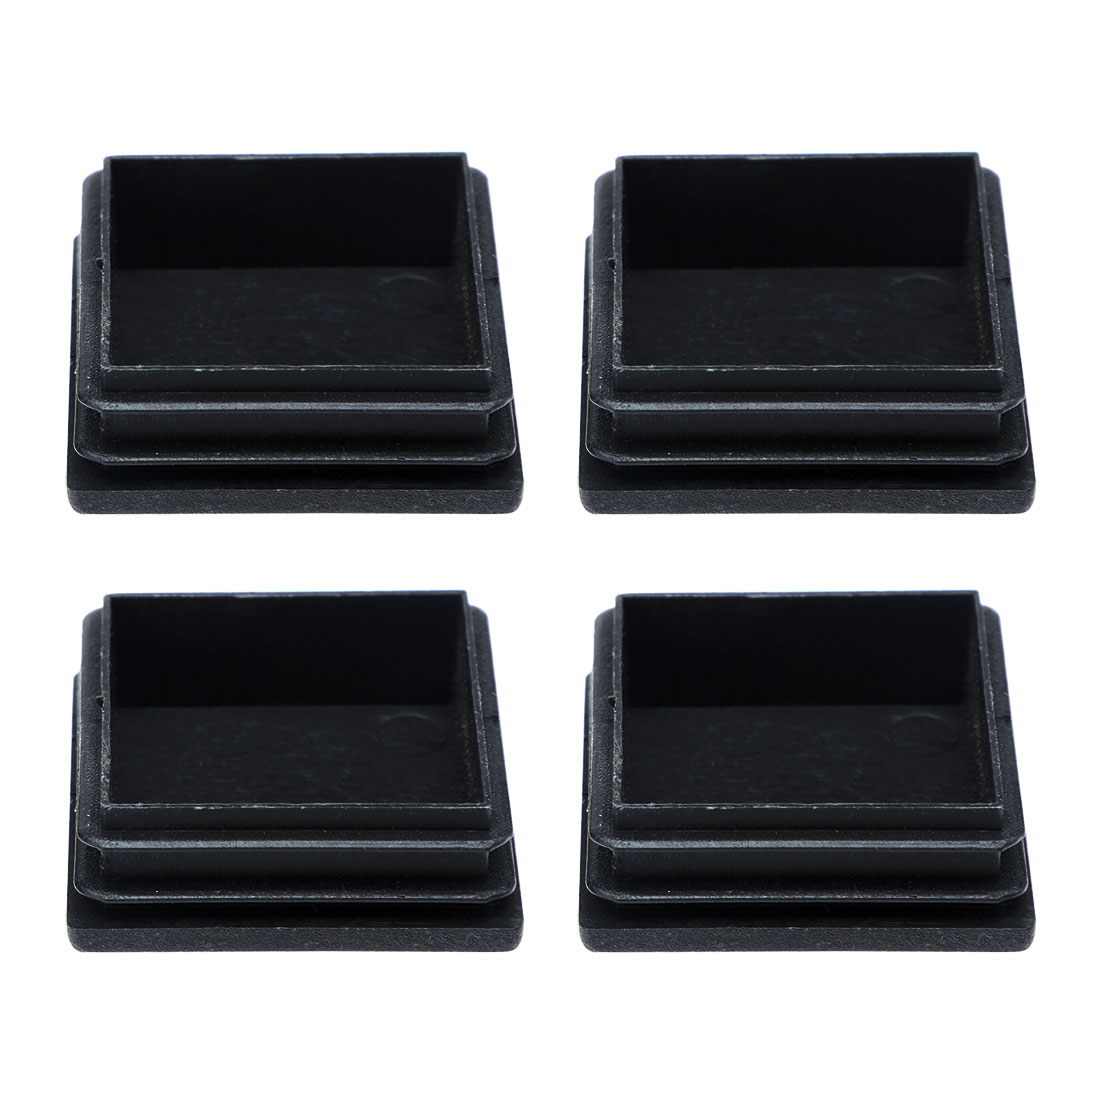 Household Plastic Square Blanking End Cap Pipe Tube Tubing Insert Black 4Pcs